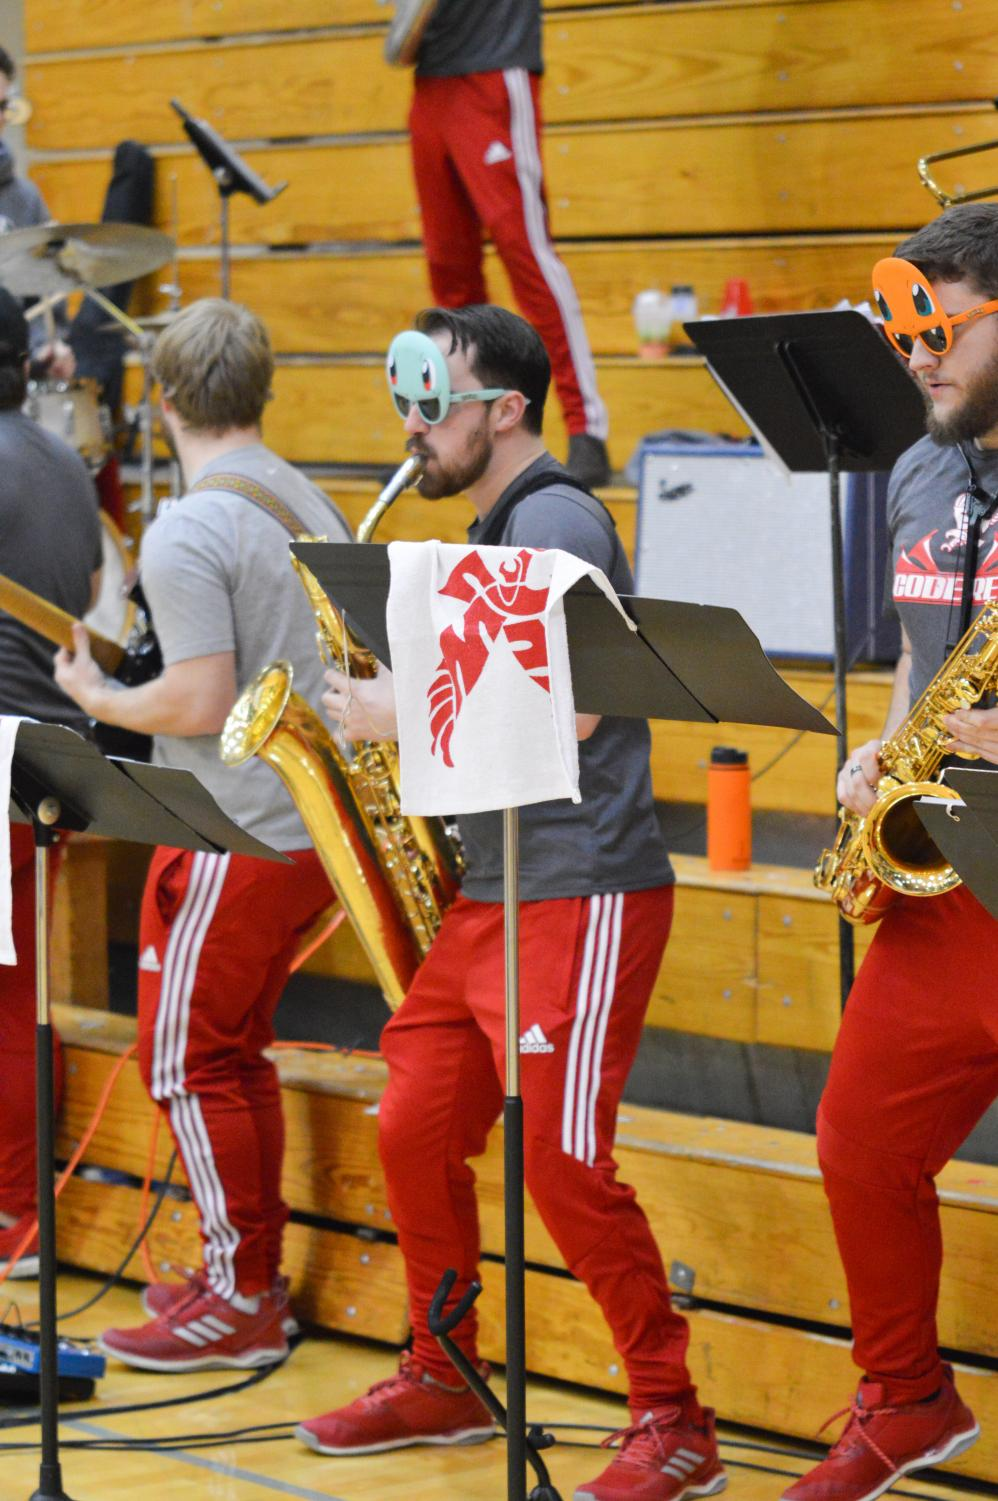 Senior saxophone player Nicholas Walsh performs with Code Red at a basketball game on Feb. 28. During games band members typically taunt opposing teams, including yelling